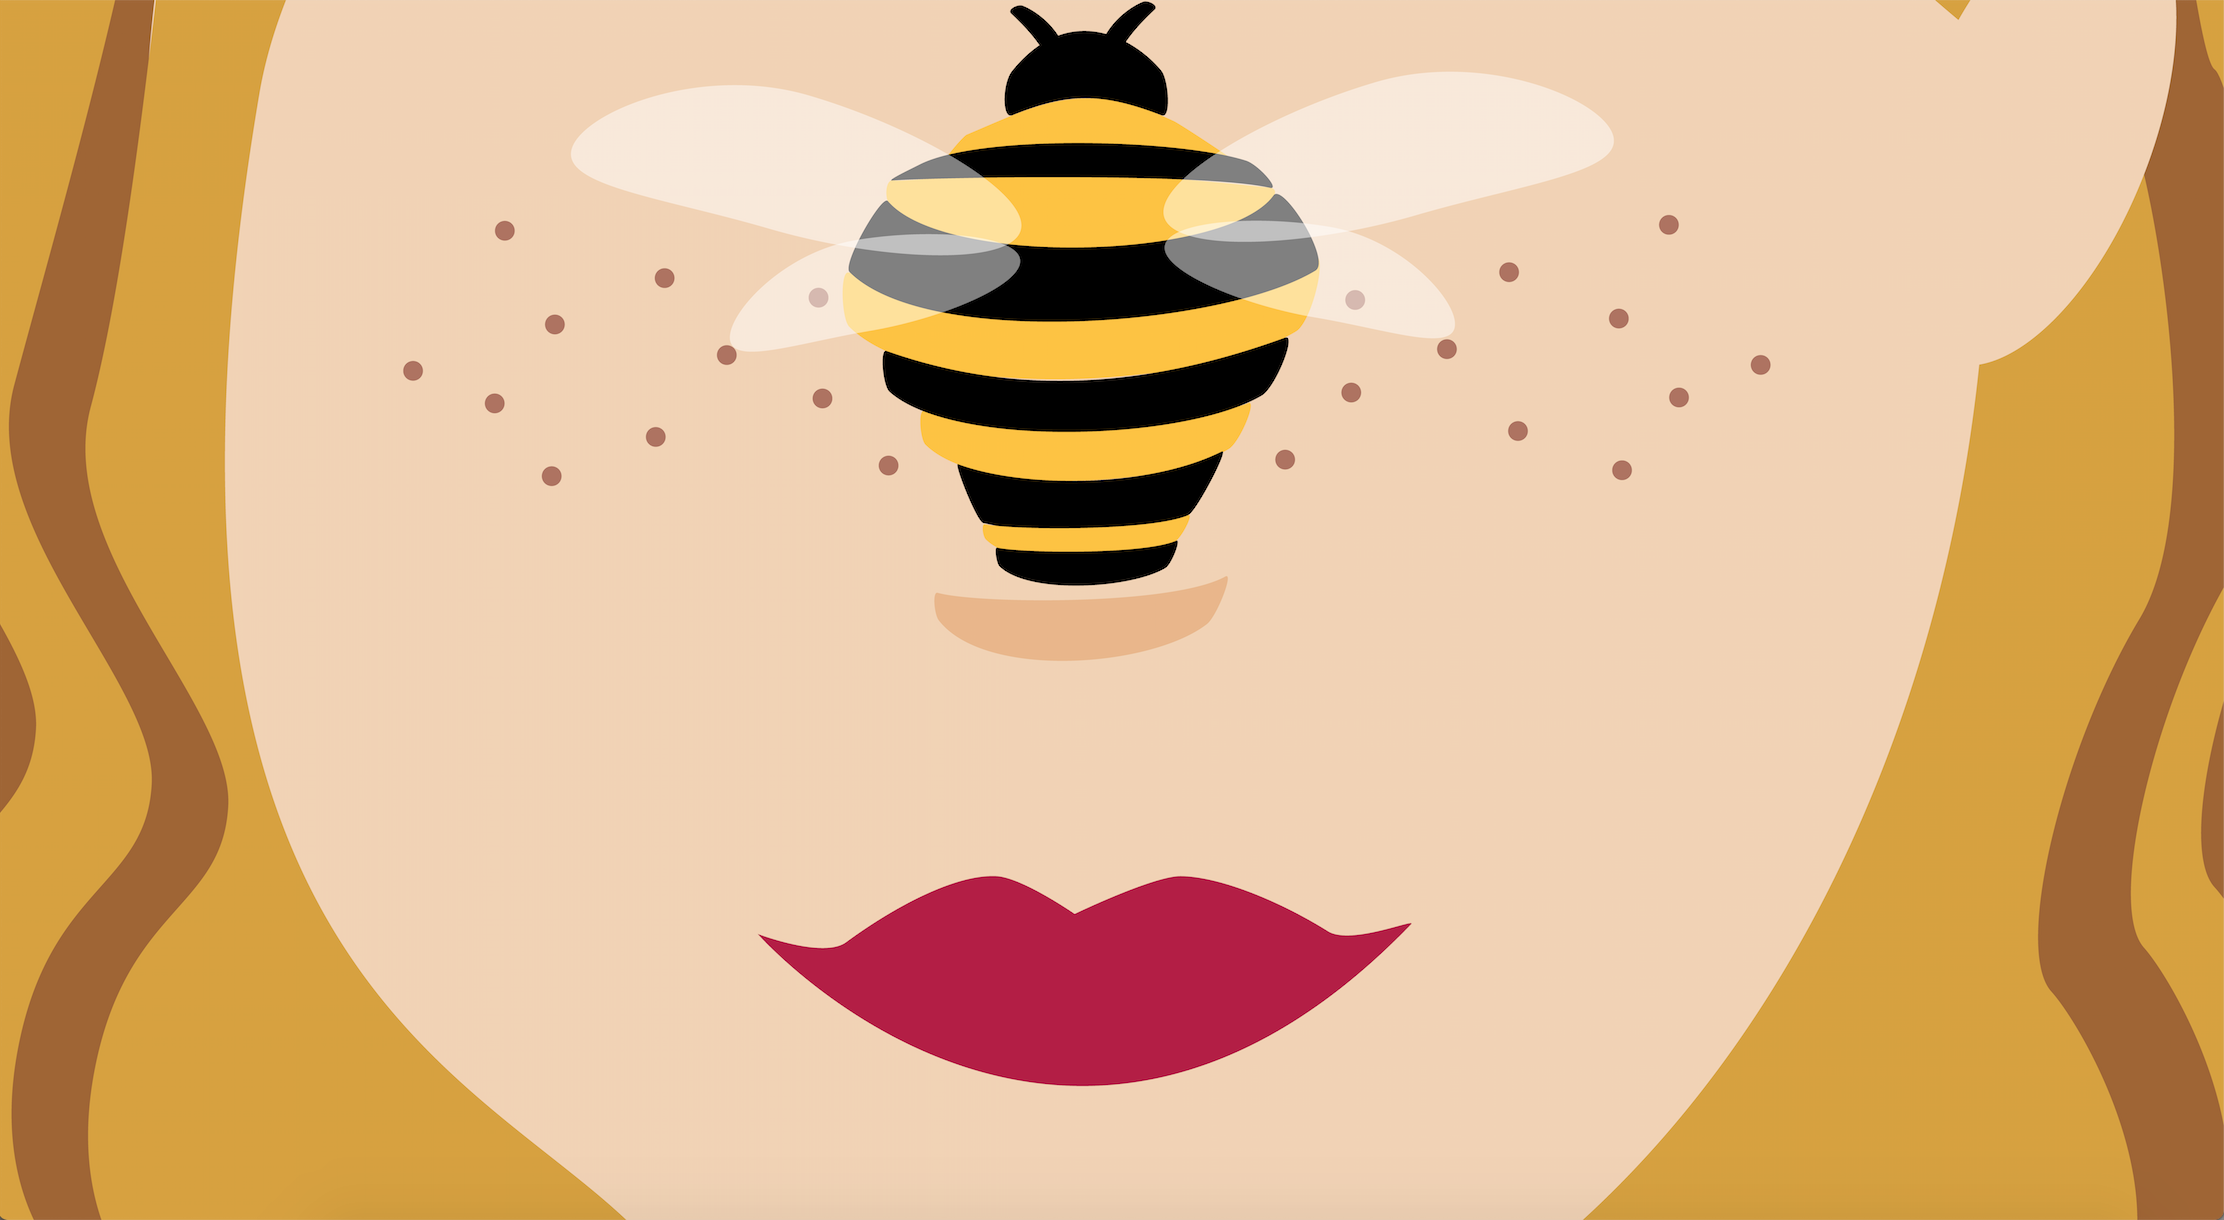 Eva B. personal website - logo illustration face with freckles, red lips and bee on nose- Eva B.